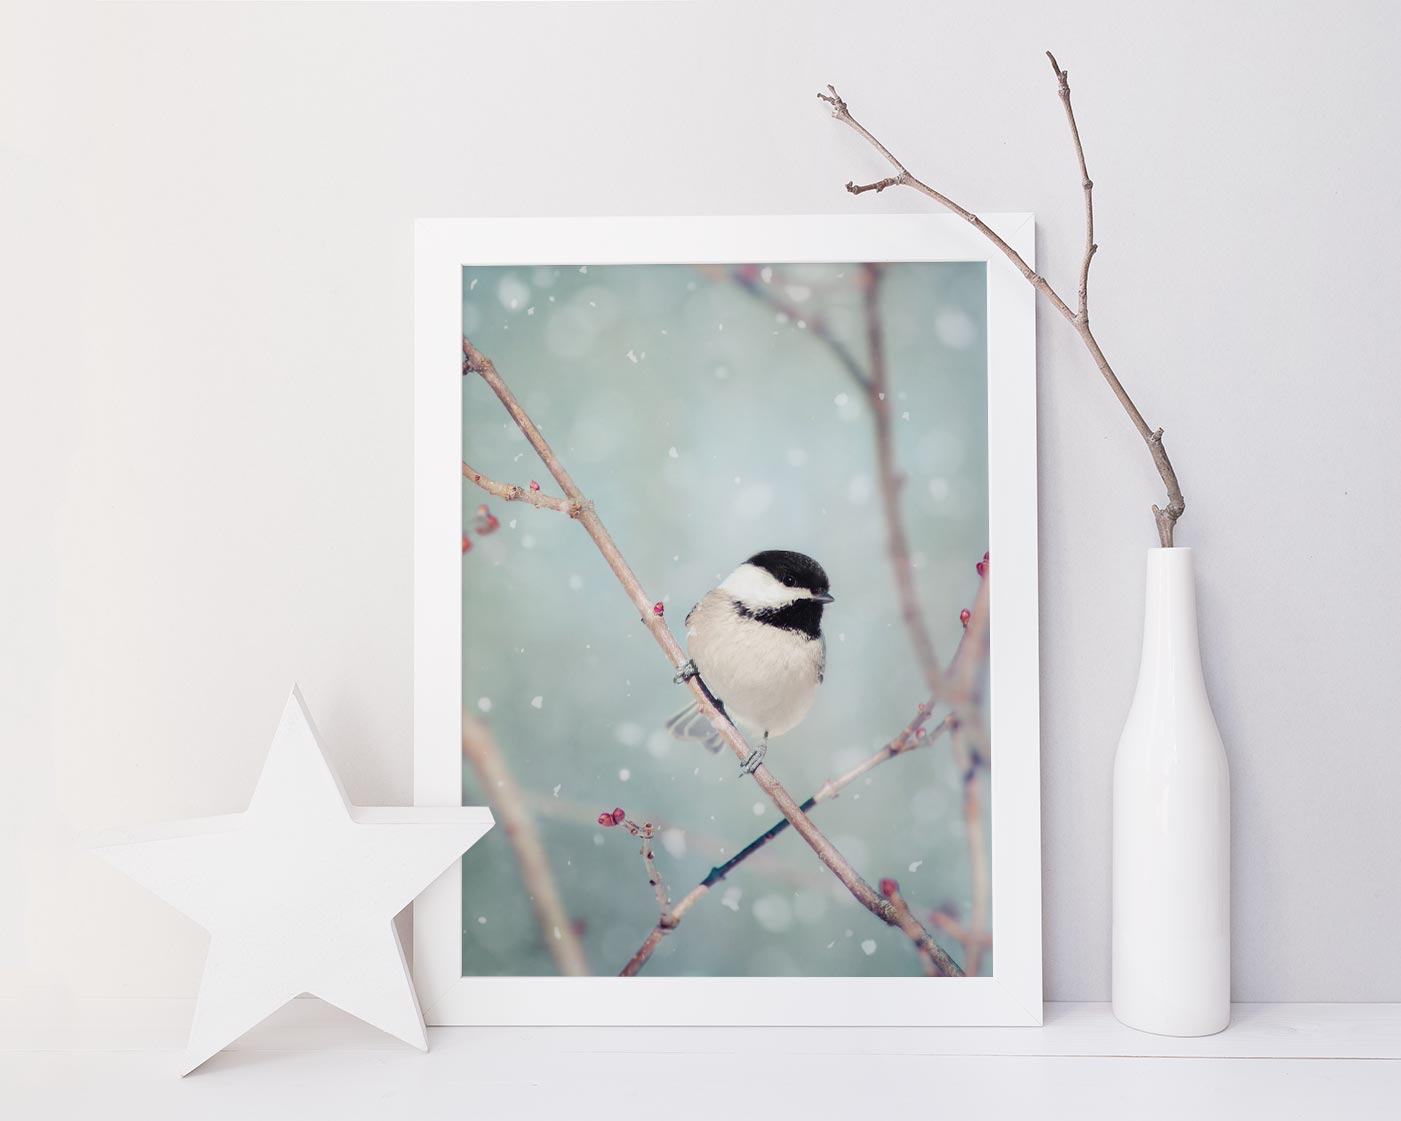 Chickadee in Snow No. 18